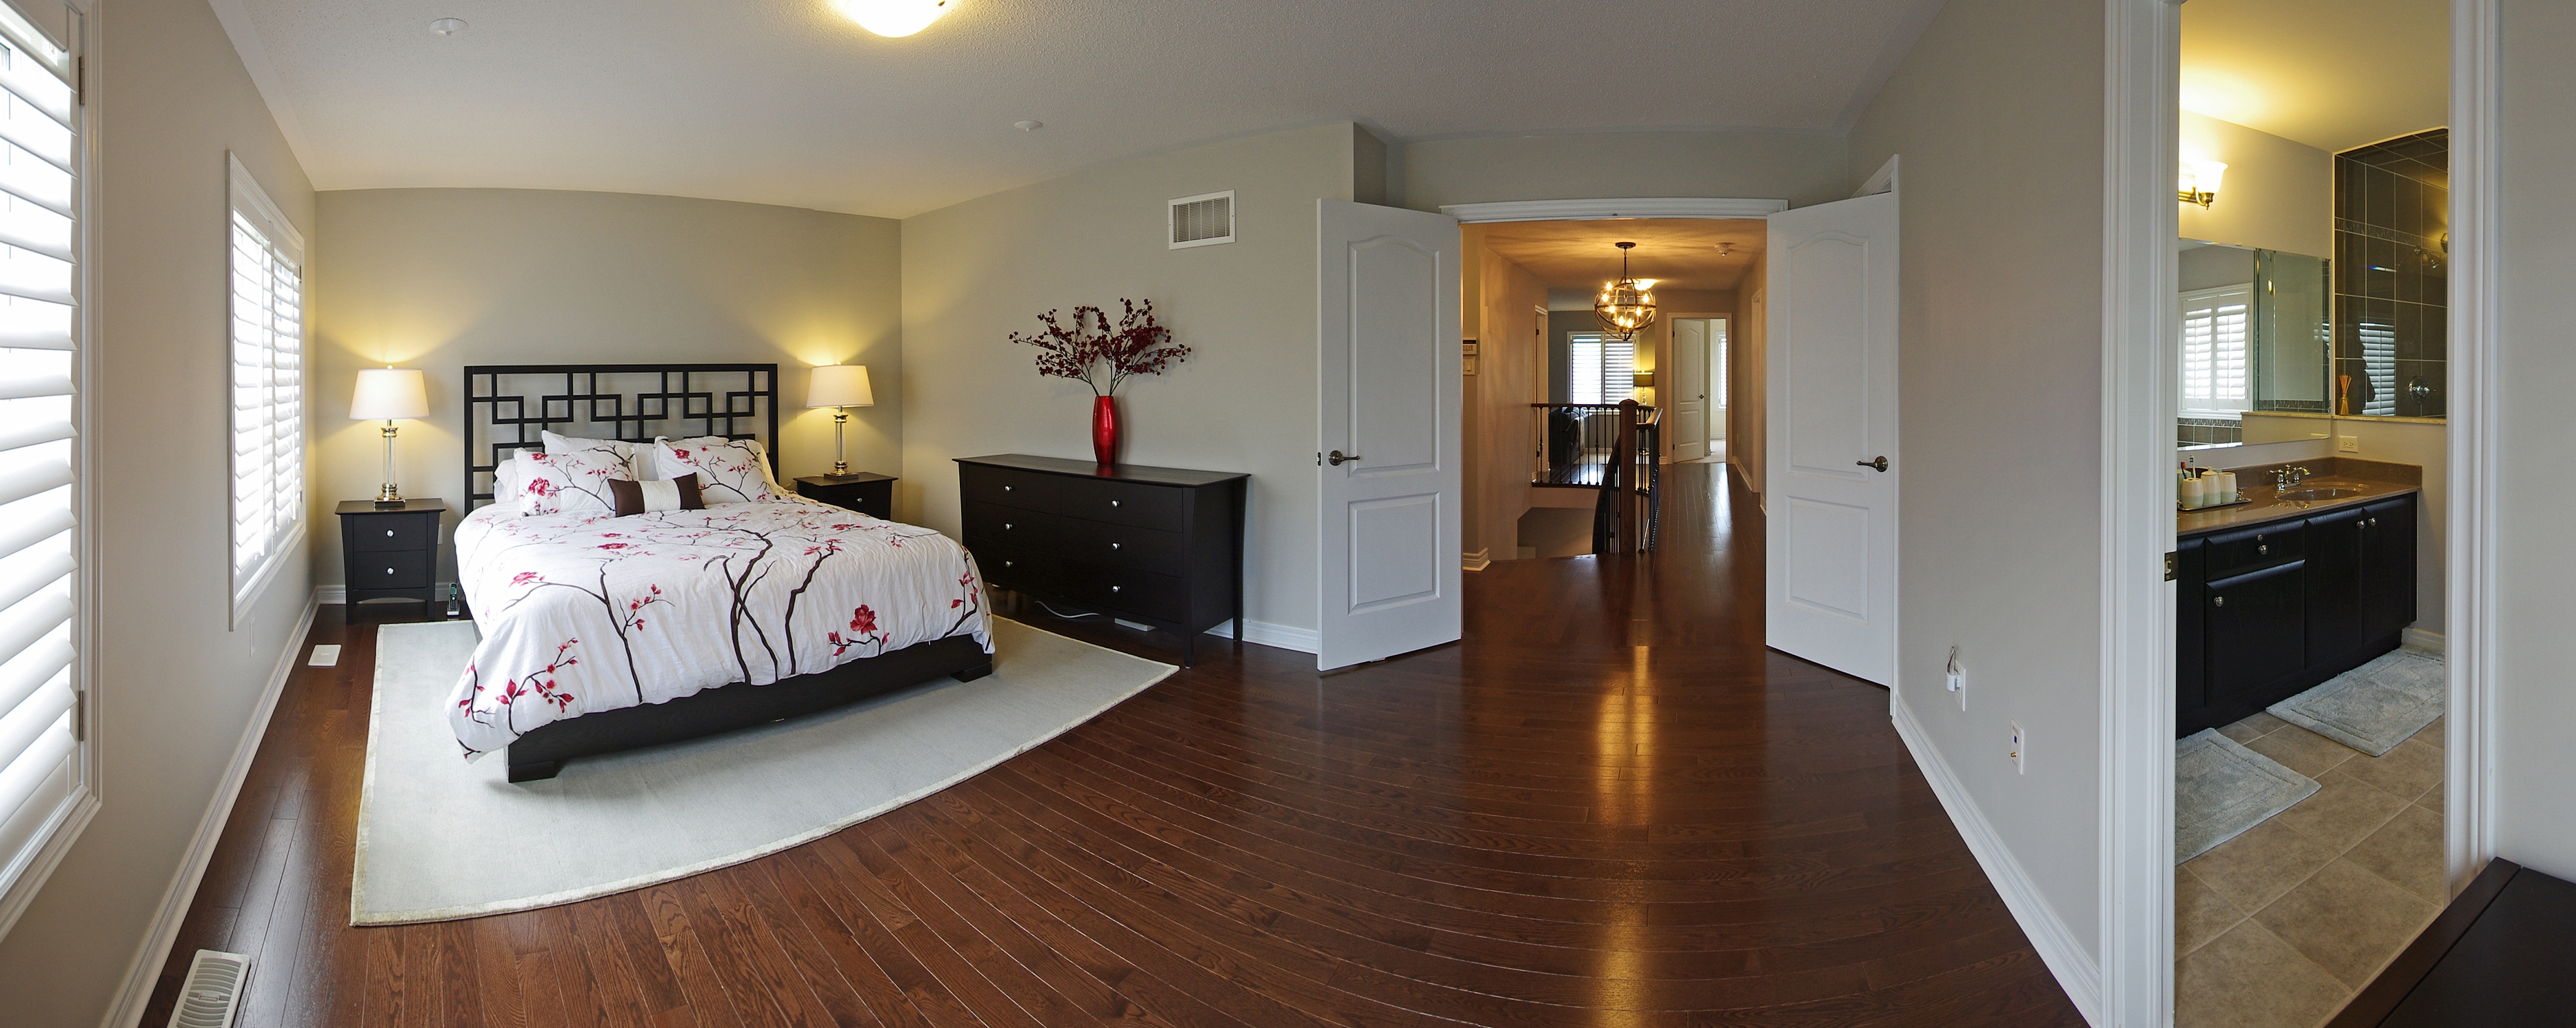 Panoramic view real estate interior exterior wide angle - How to take interior photos for real estate ...